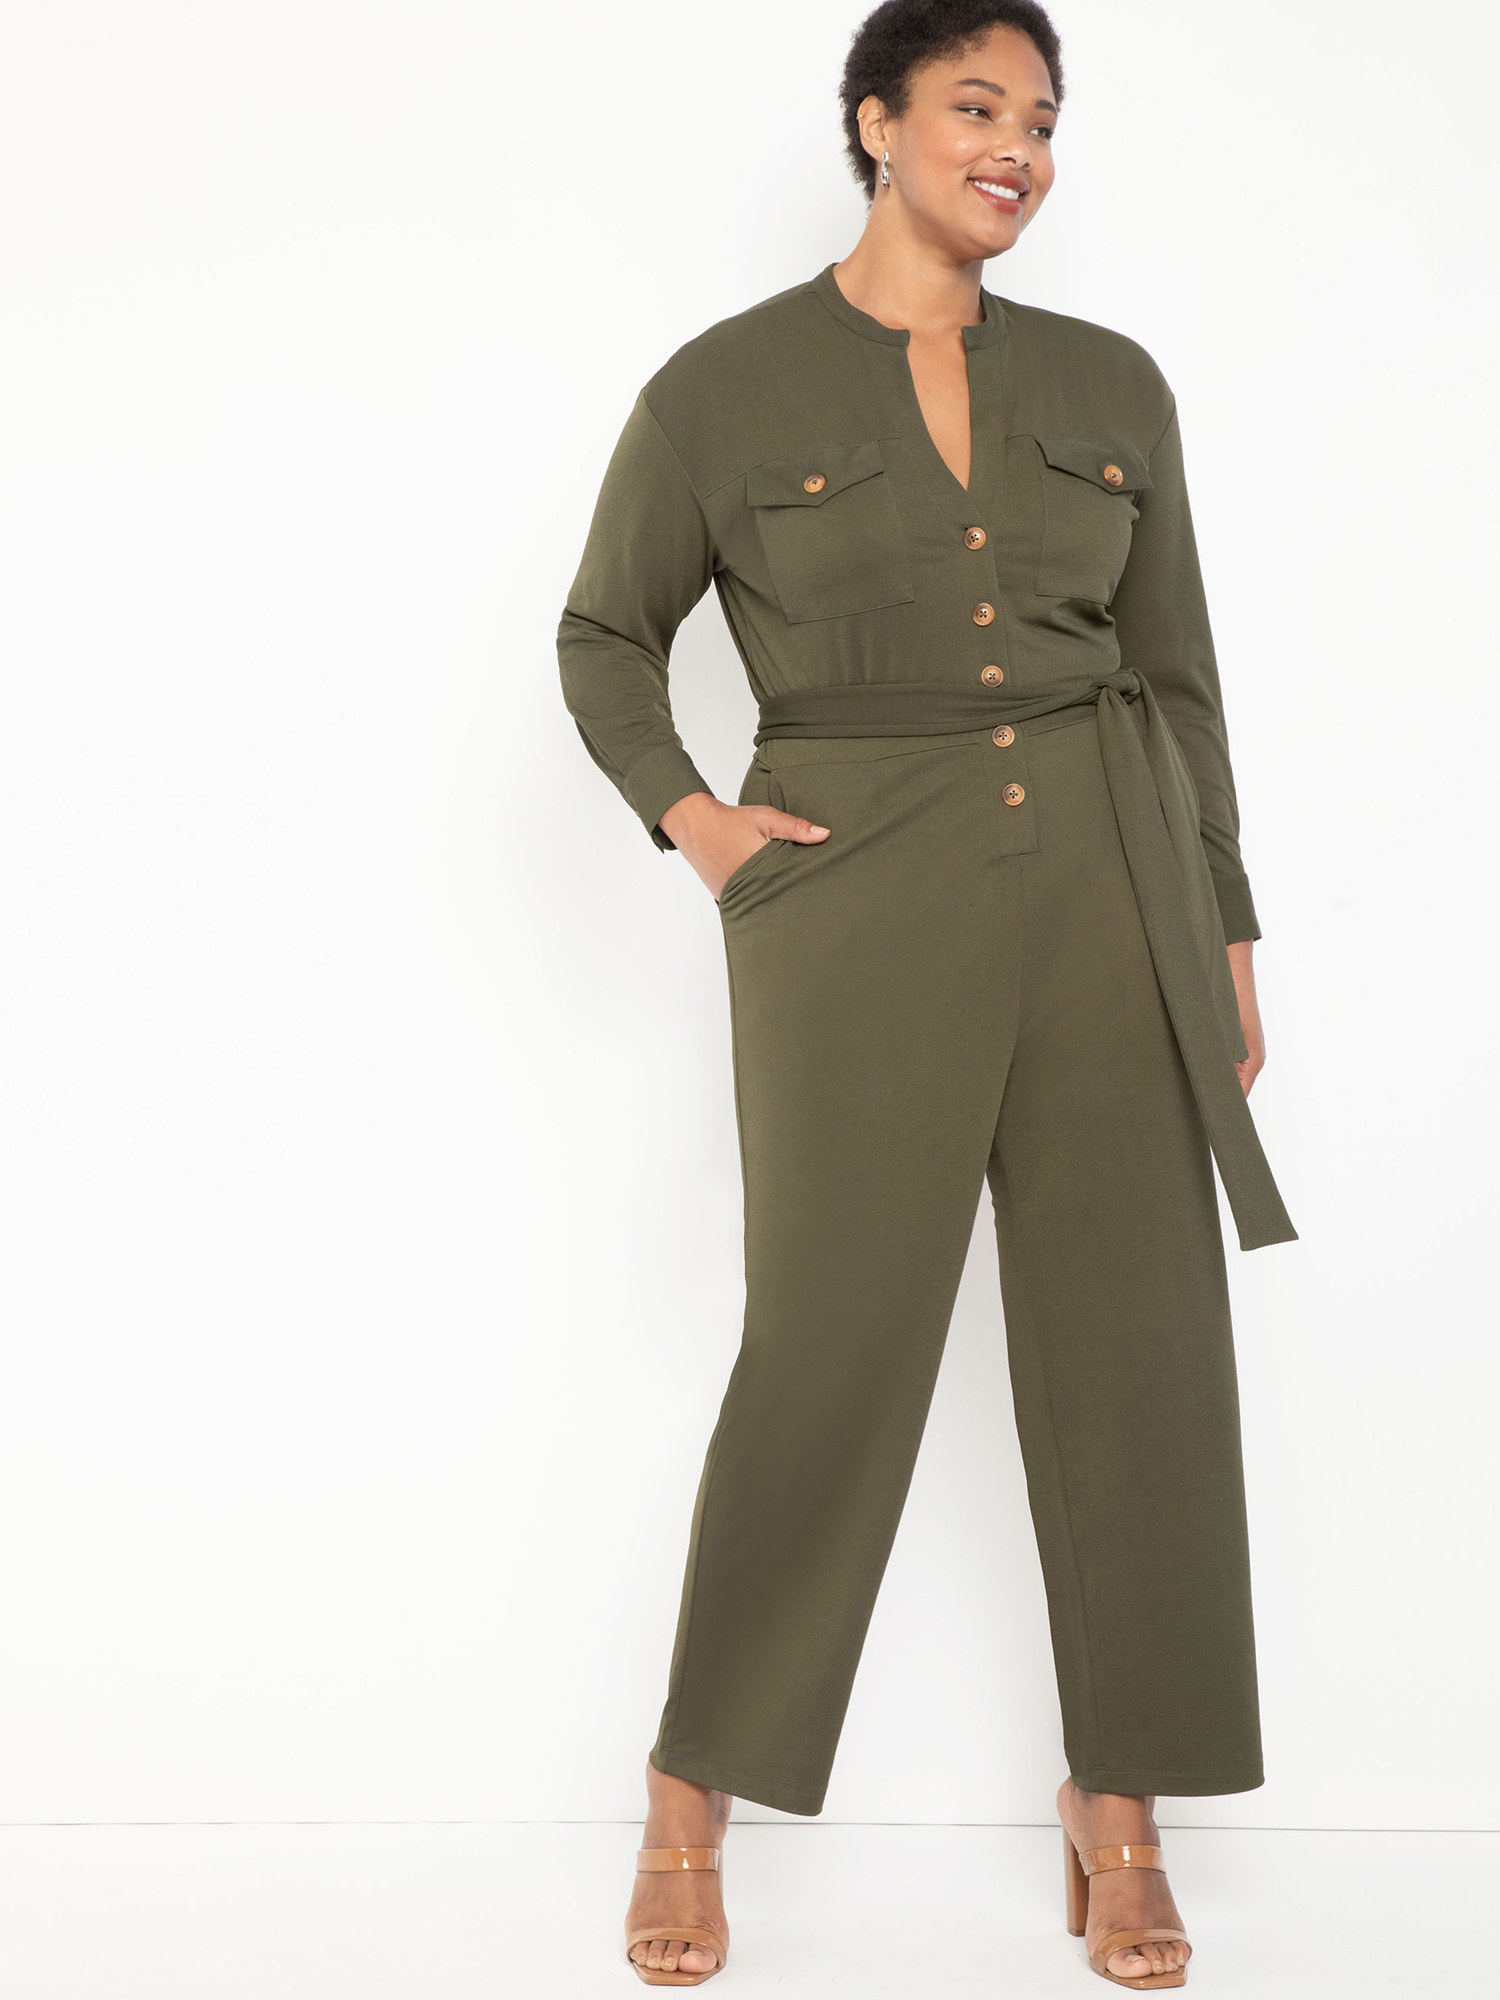 A model wearing the jumpsuit